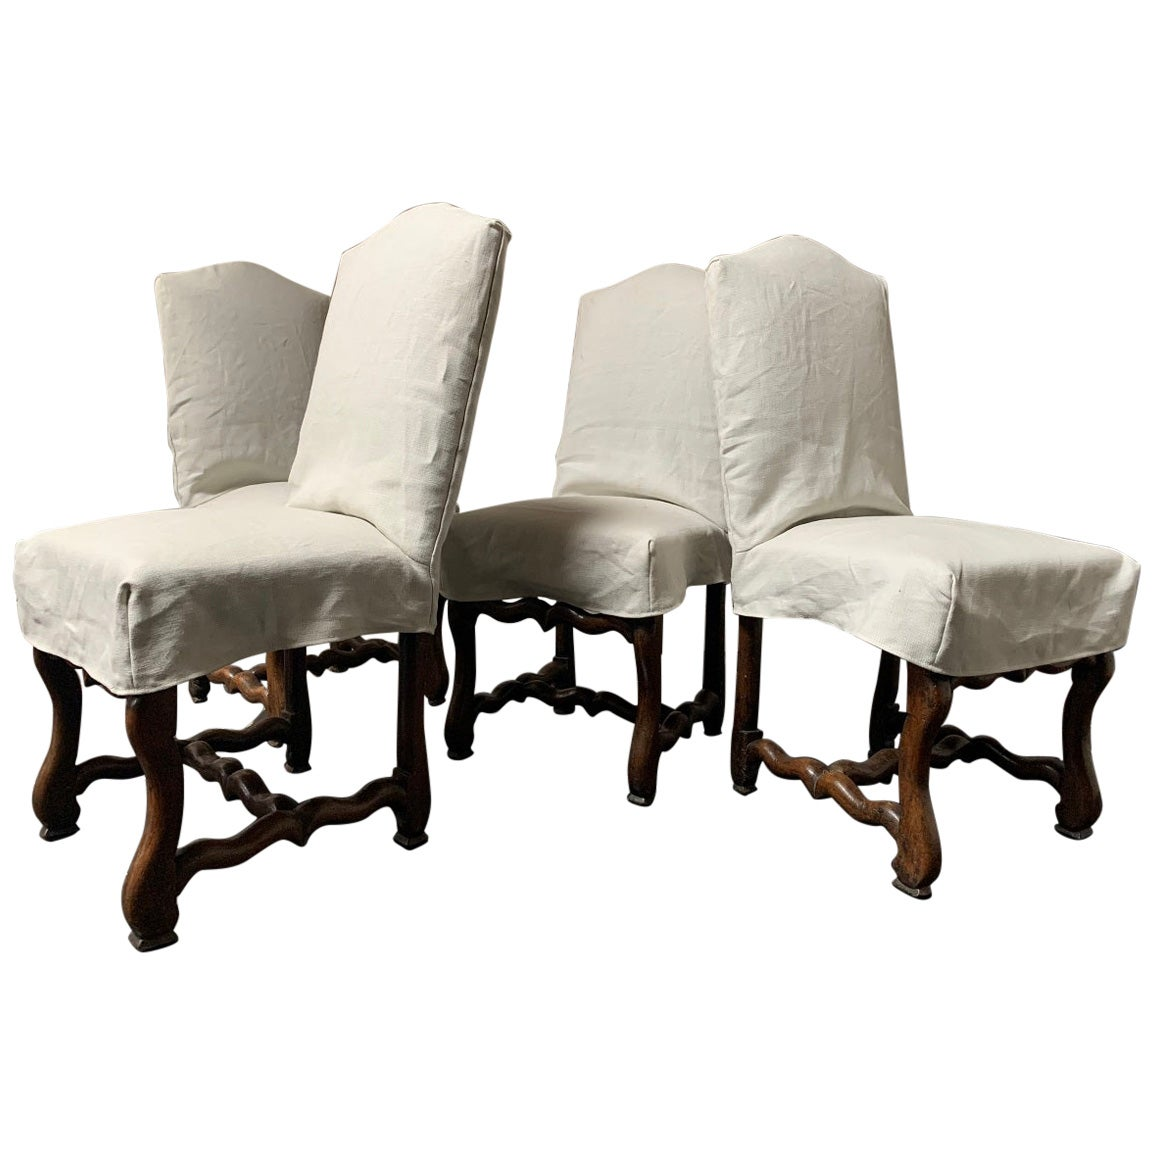 Set of 4 19th Century Walnut French Chairs